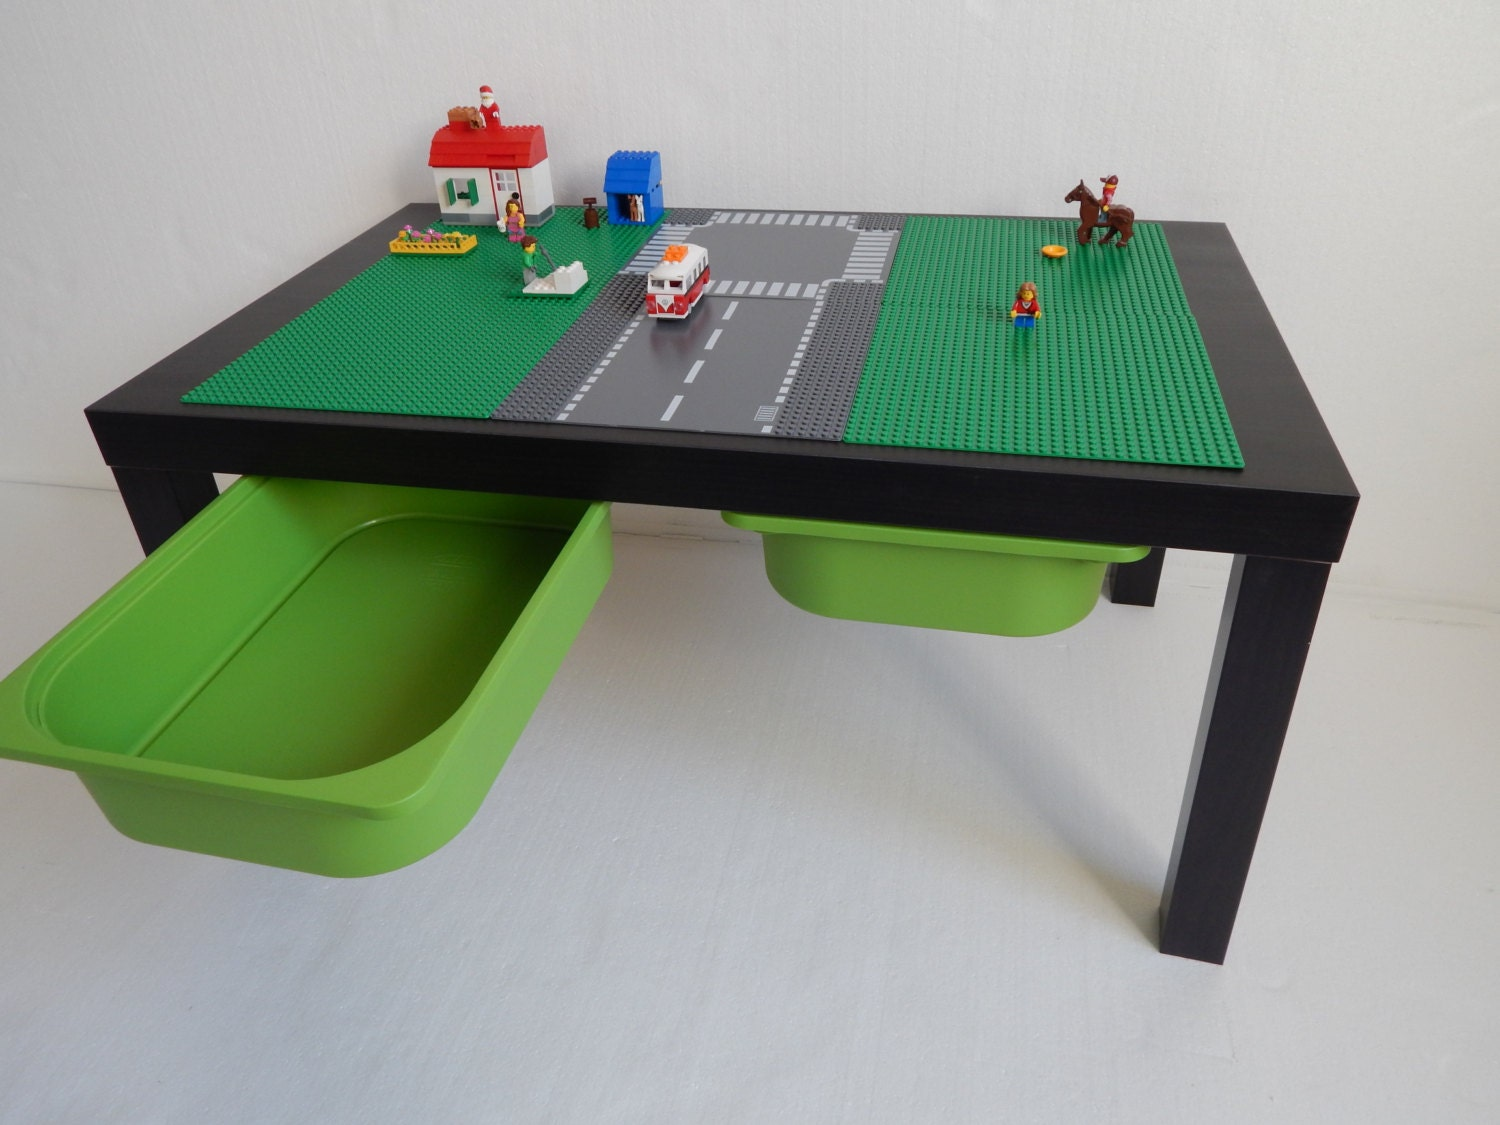 large lego storage table 30x20 green with road. Black Bedroom Furniture Sets. Home Design Ideas